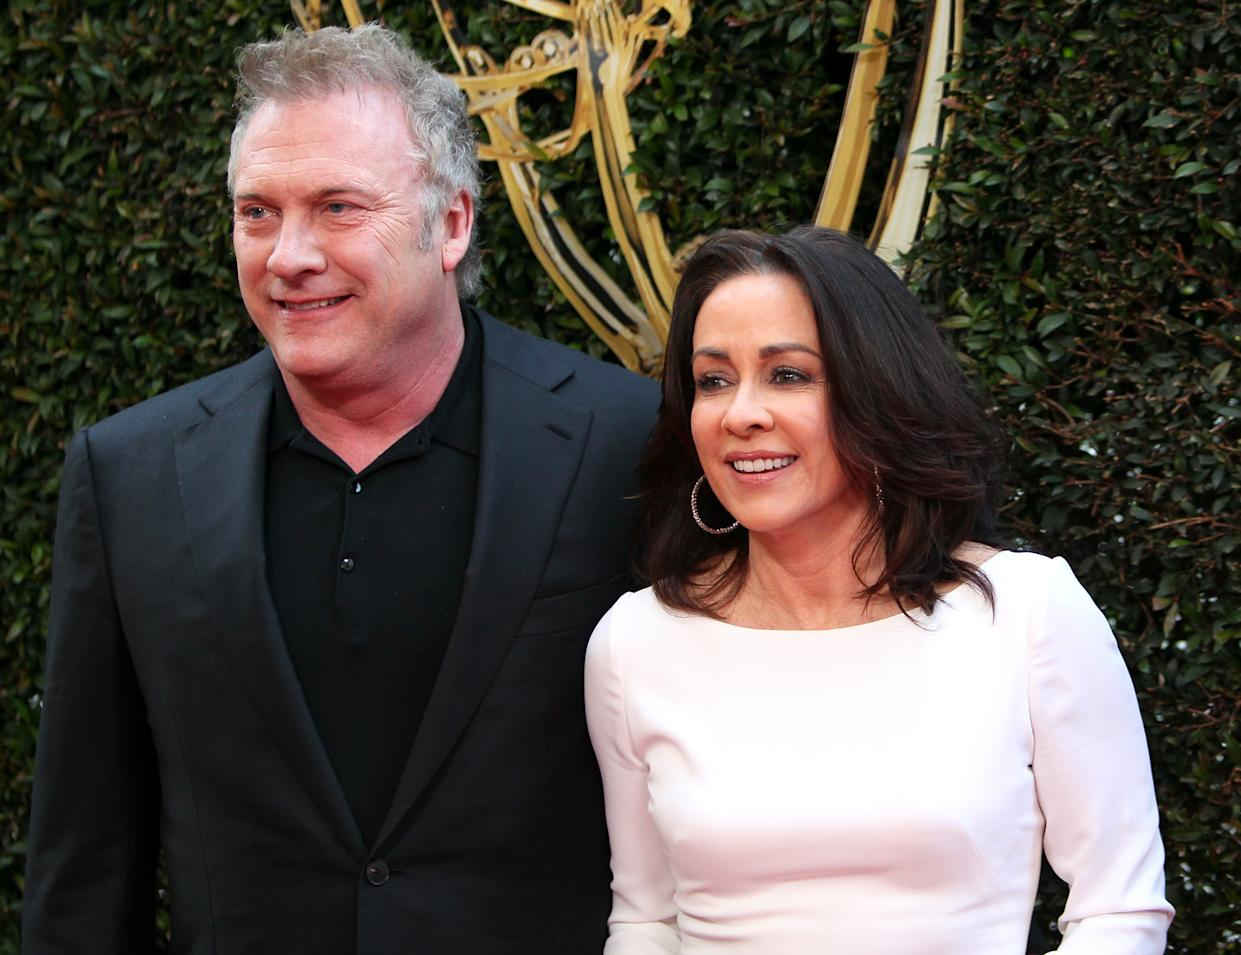 David Hunt, pictured with wife Patricia Heaton in 2016, was accused of inappropriately touching a female writer on the set of Carol's Second Act. (Photo: David Livingston/Getty Images)